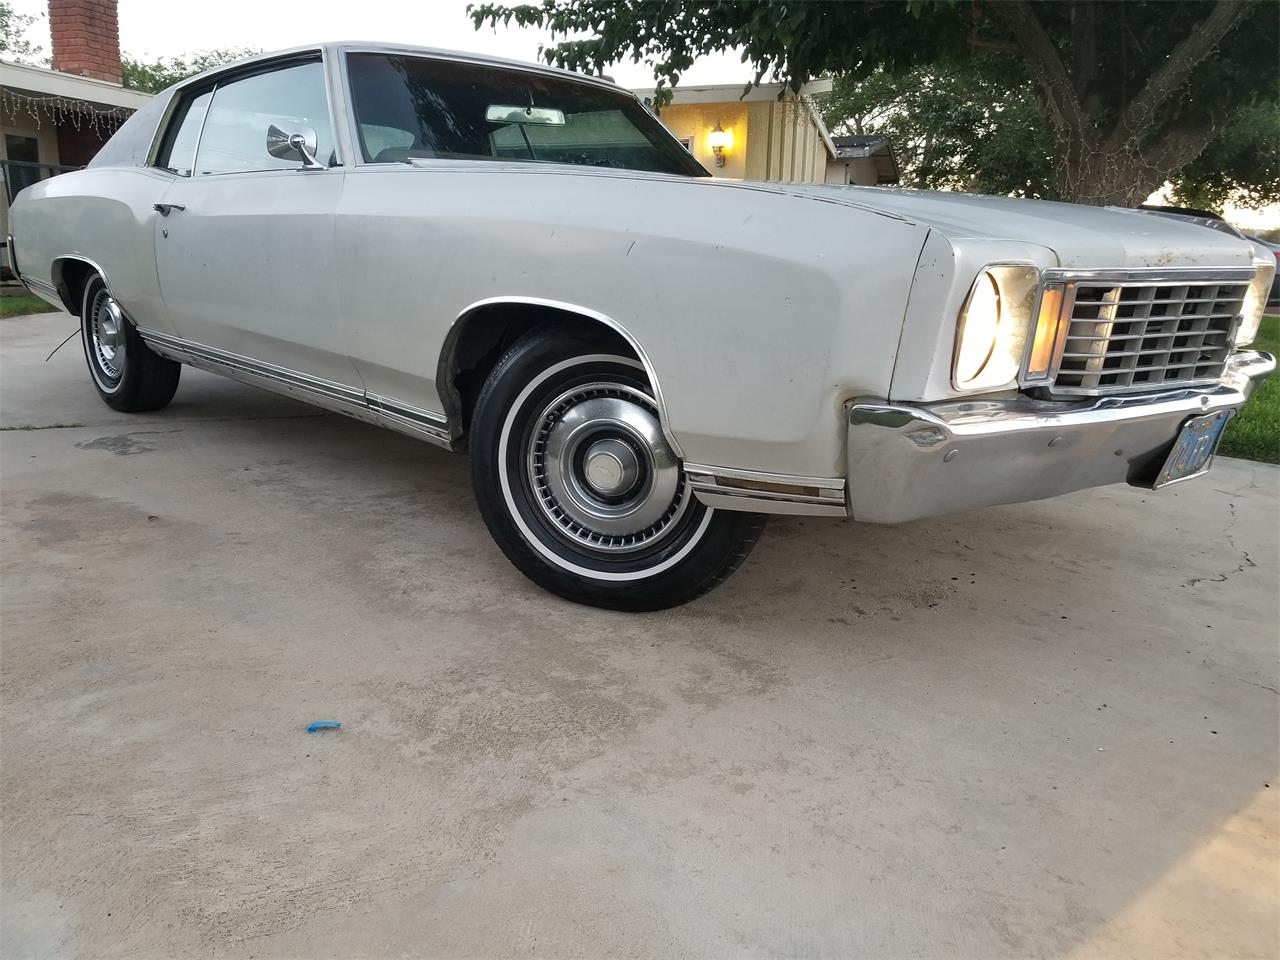 1972 Chevrolet Monte Carlo for sale in Palmdale, CA – photo 3